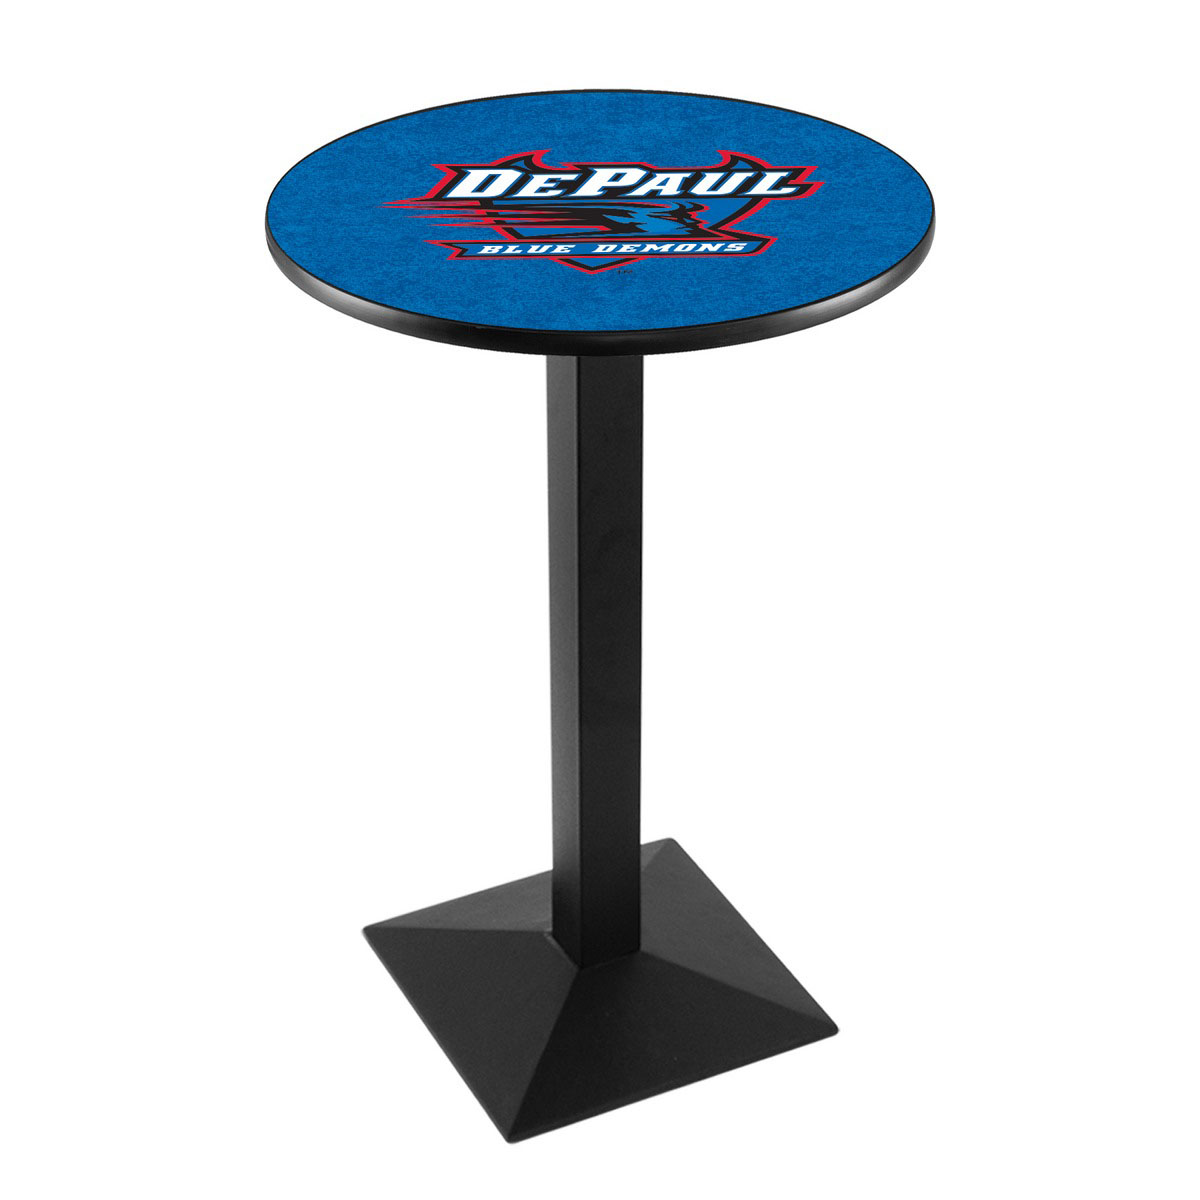 Stylish Depaul University Logo Pub Bar Table Square Stand Product Photo